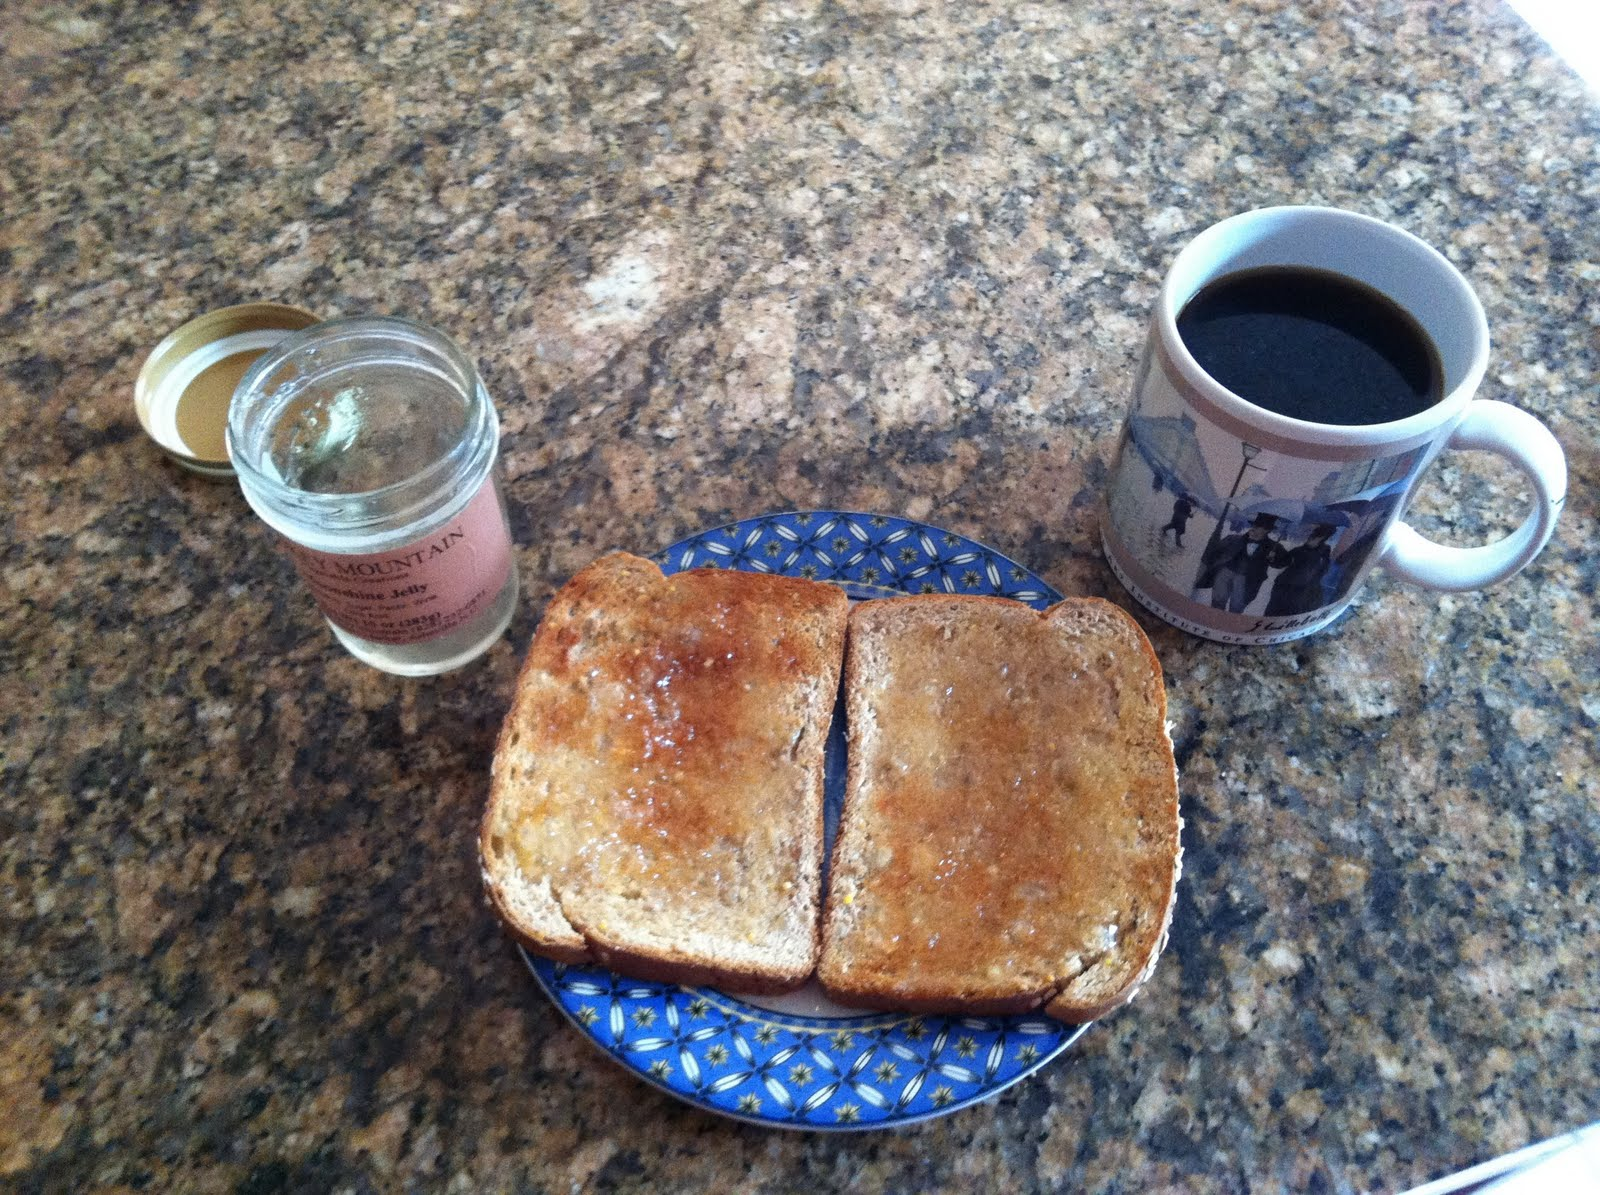 Moonshine Jelly, Toast, and Coffee